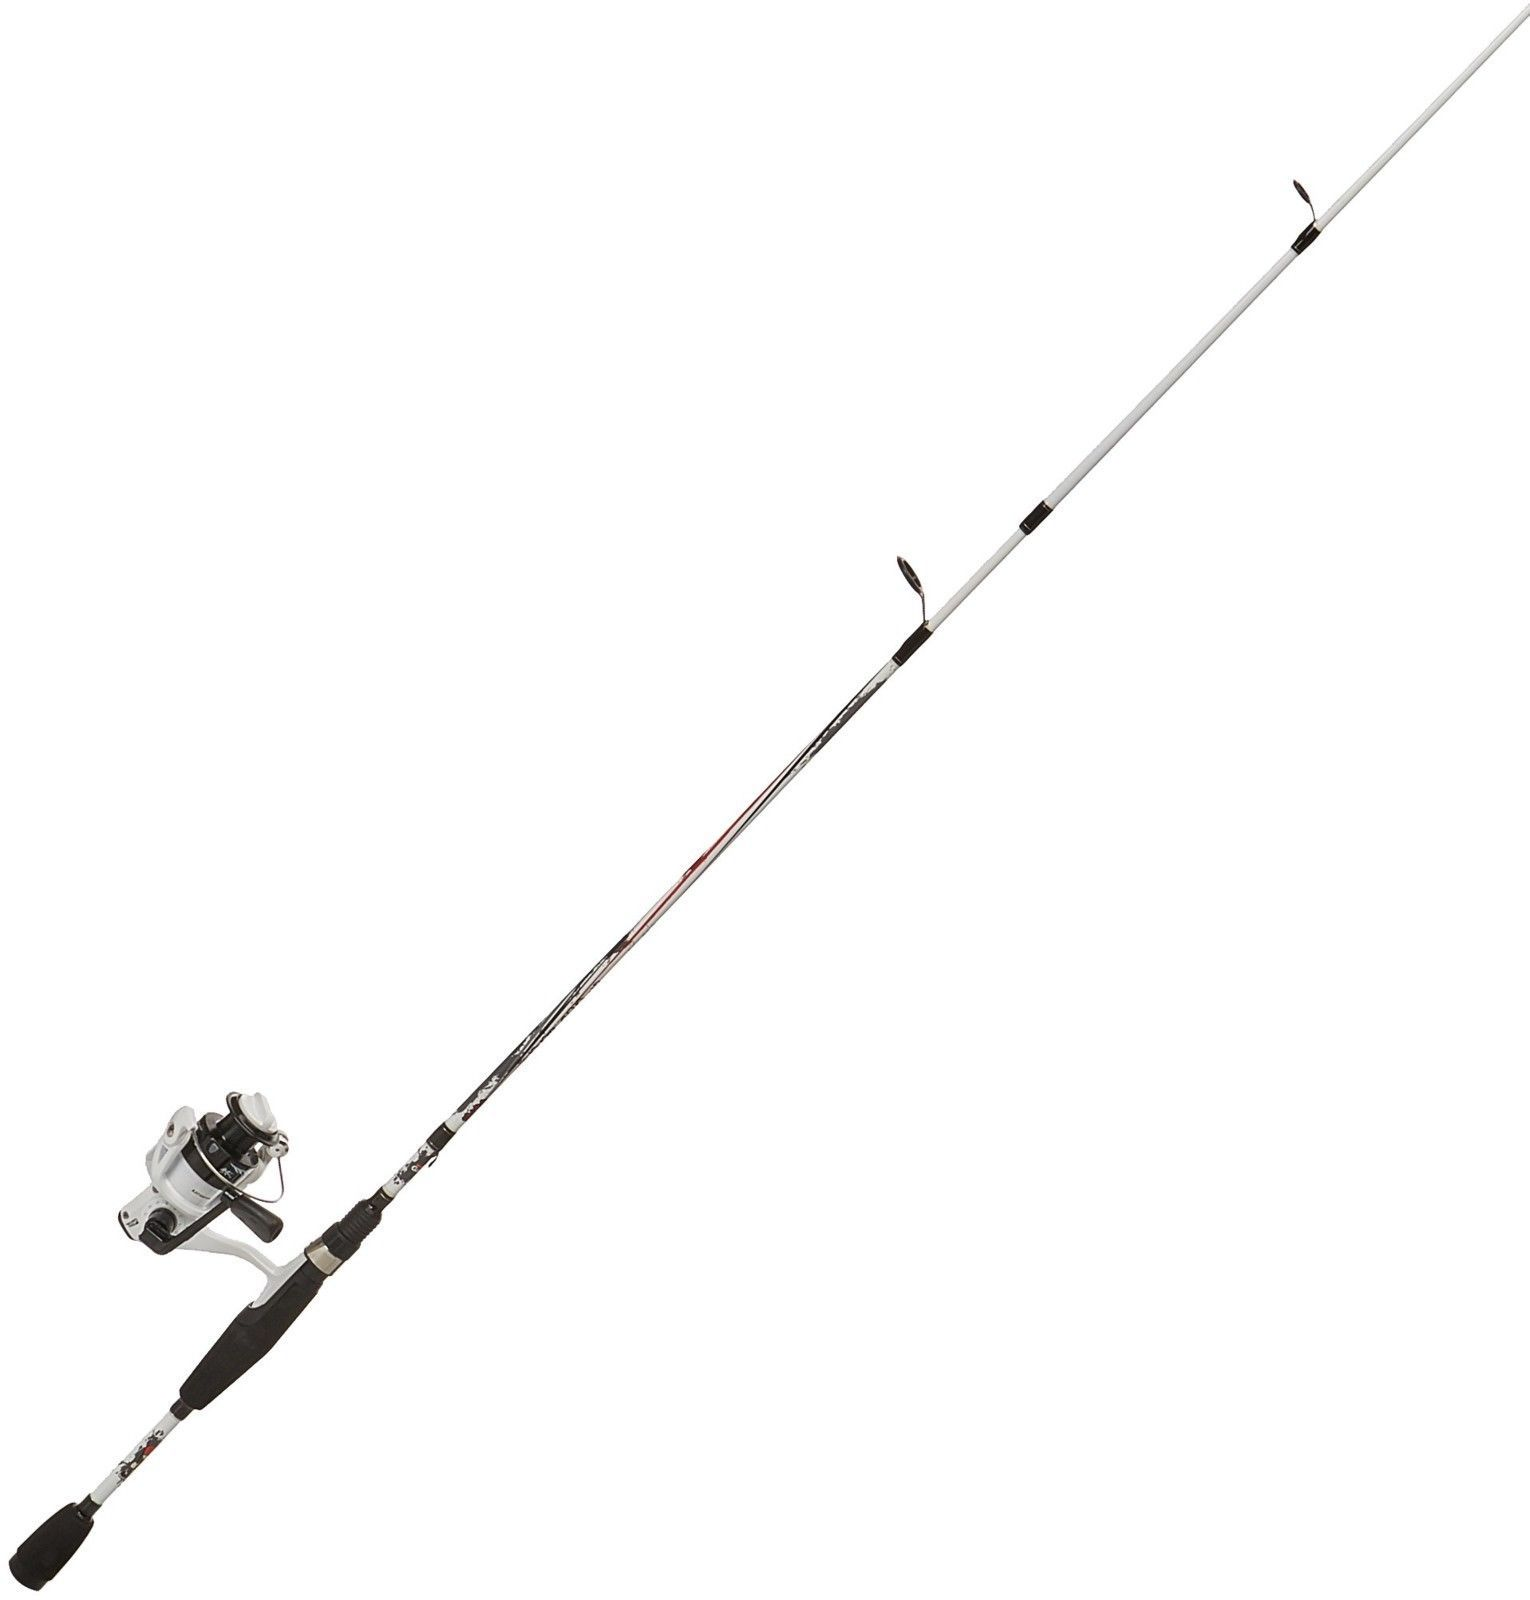 New Penn Powerstix Pro 13 Feet Surf Rod Penn Surfblaster 8000 Fishing Reel Review Penn Reels Surf Rods Fishing Reels